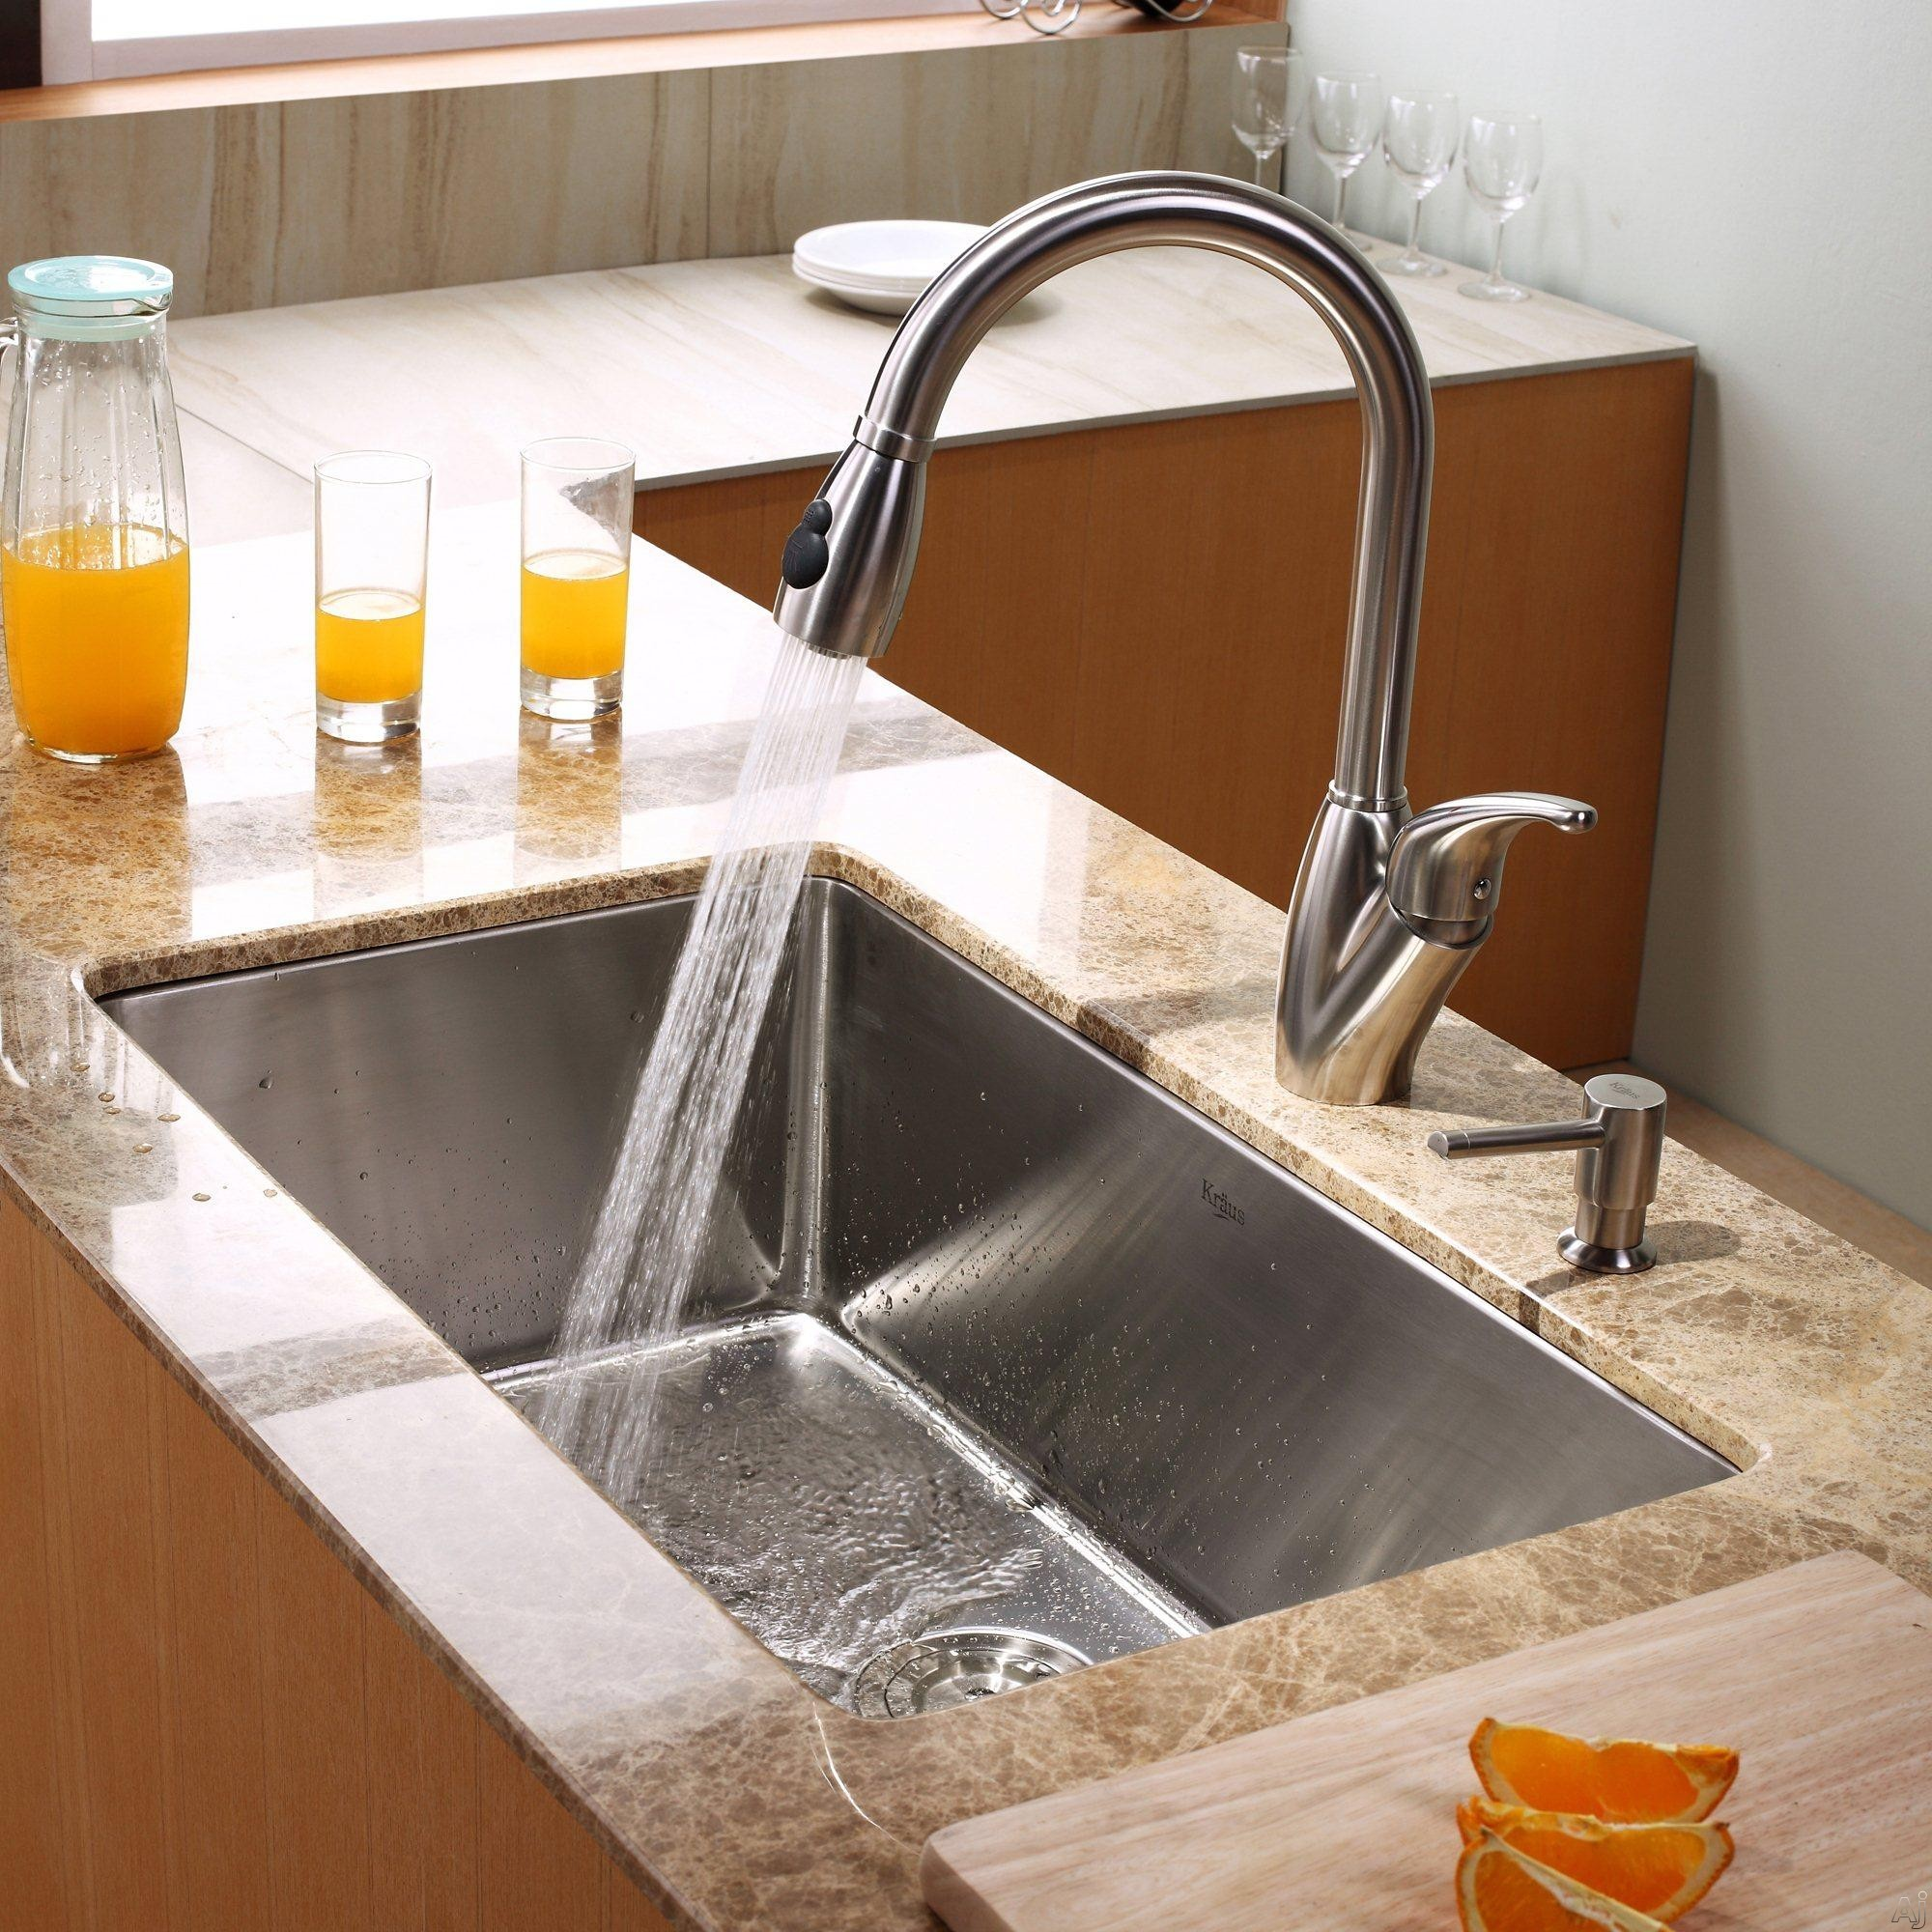 Kraus Khu10030kpf2120sd20 30 Undermount Single Bowl Stainless Steel Kitchen Sink With 16 Gauge